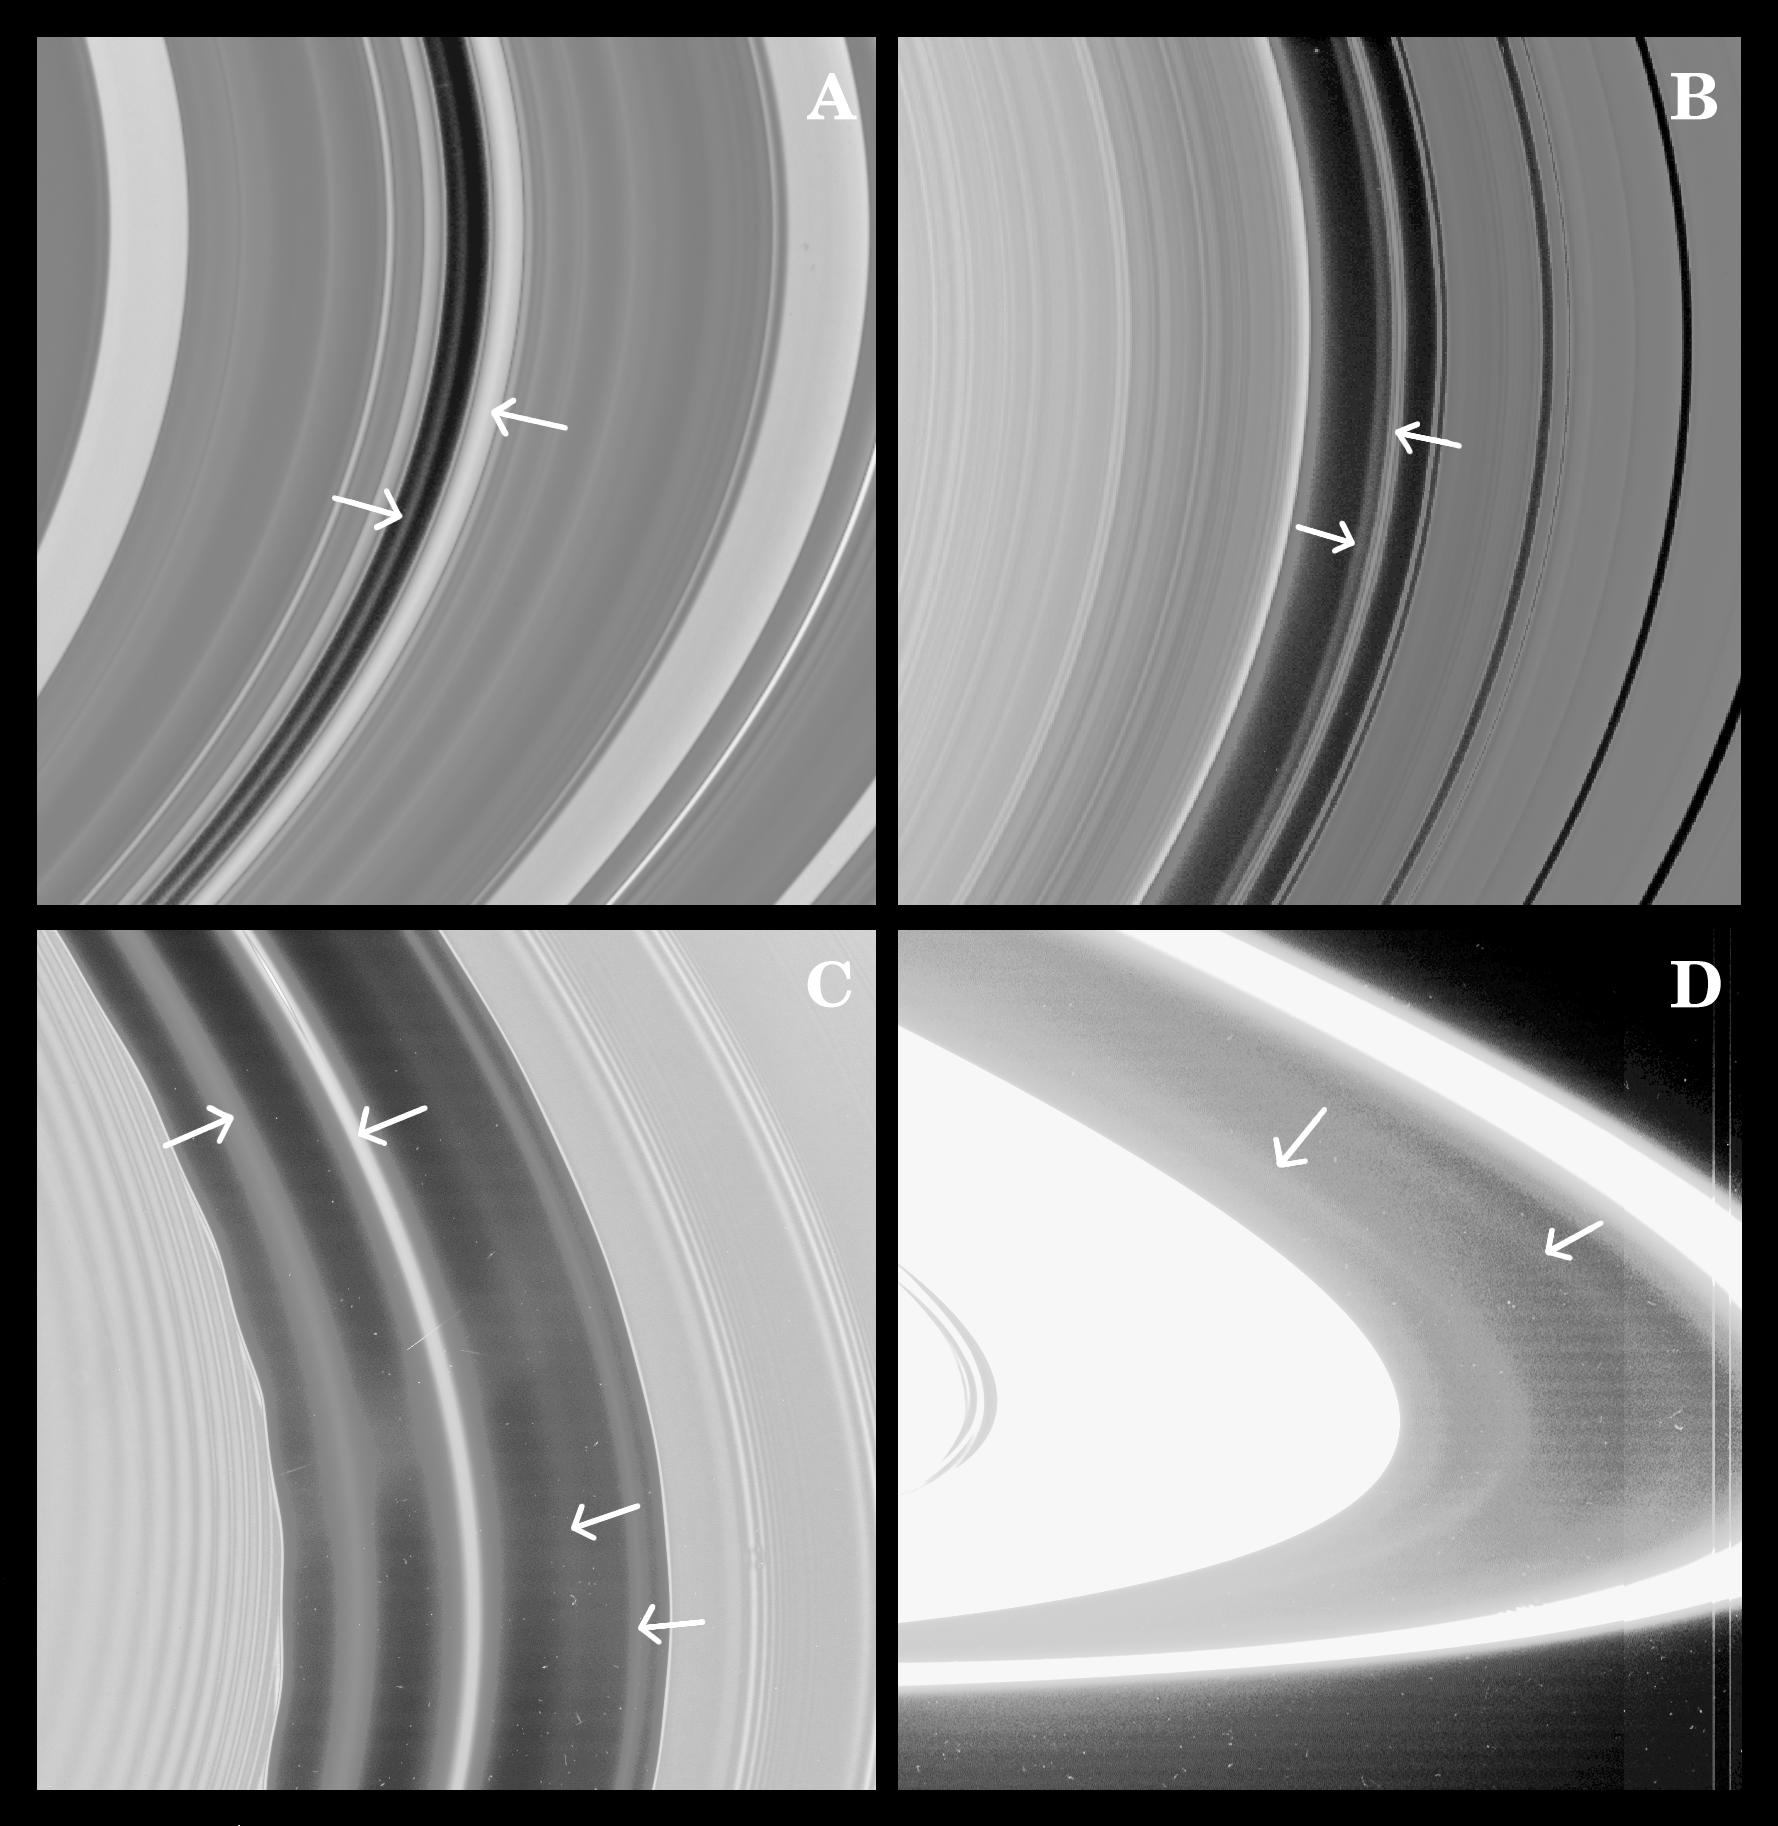 Four views of Saturn's rings labeled A through D, including arrows described in the caption